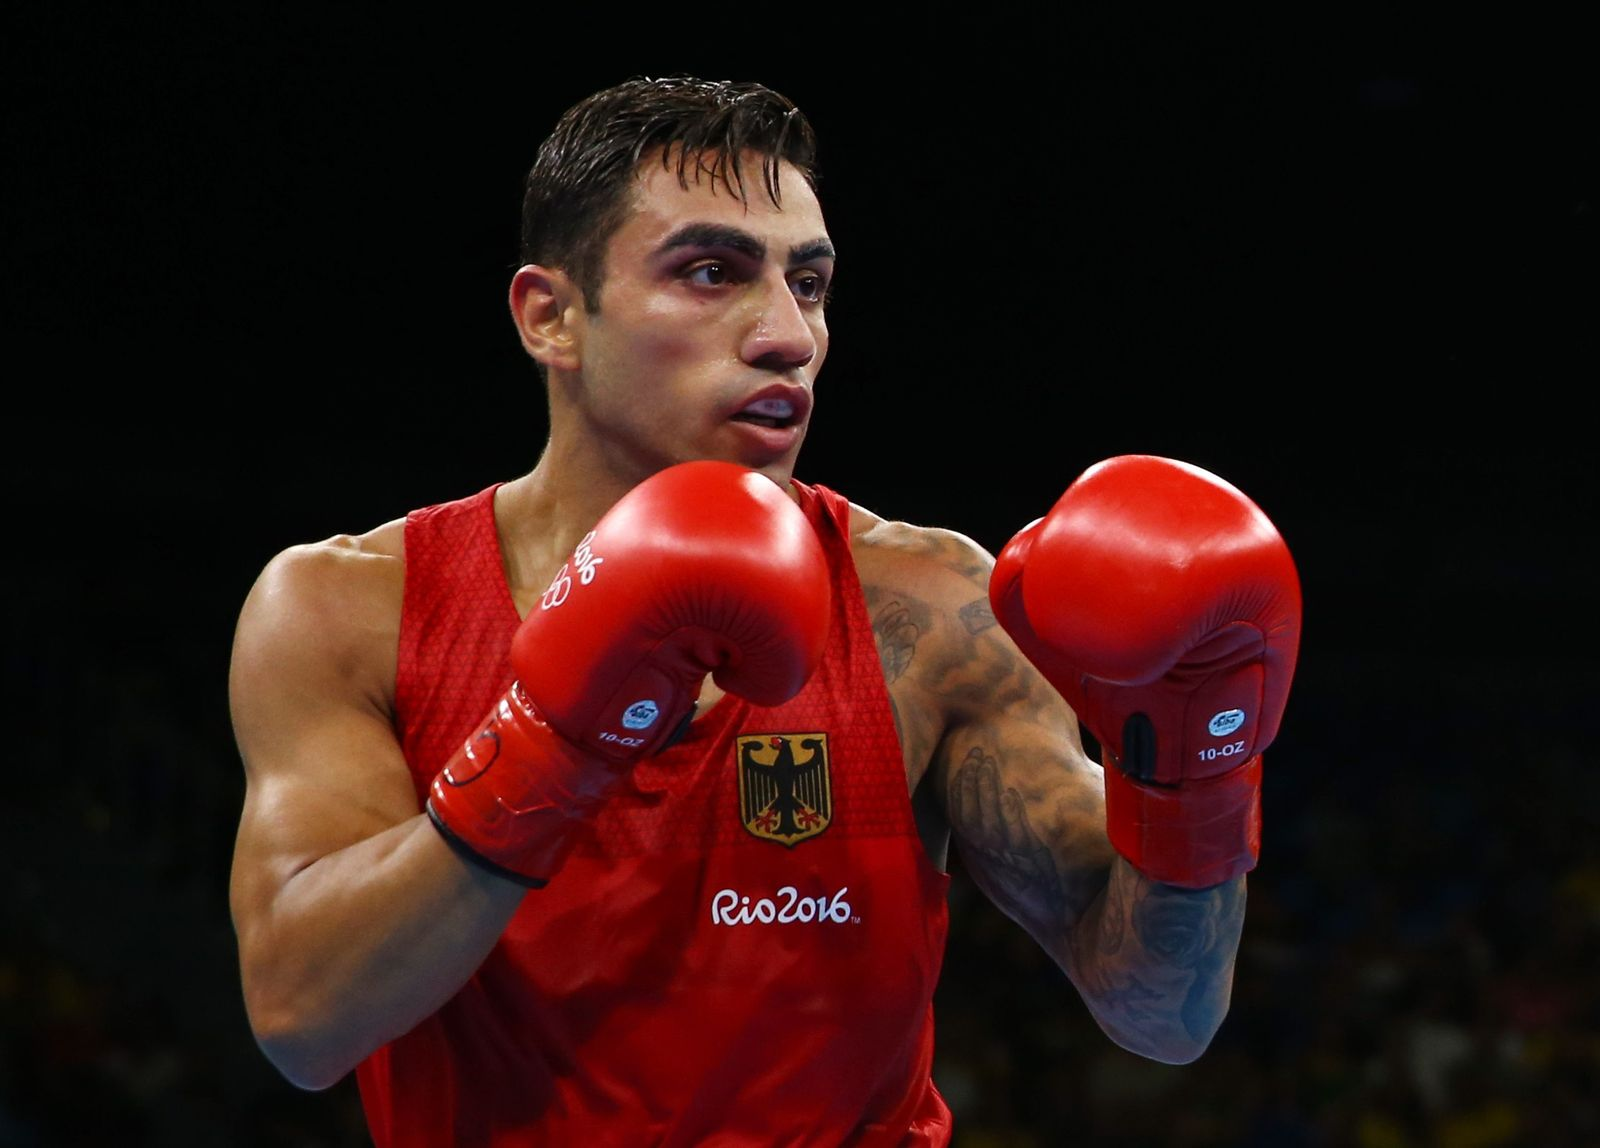 Boxing - Men's Light Welter (64kg) Round of 16 Bout 196